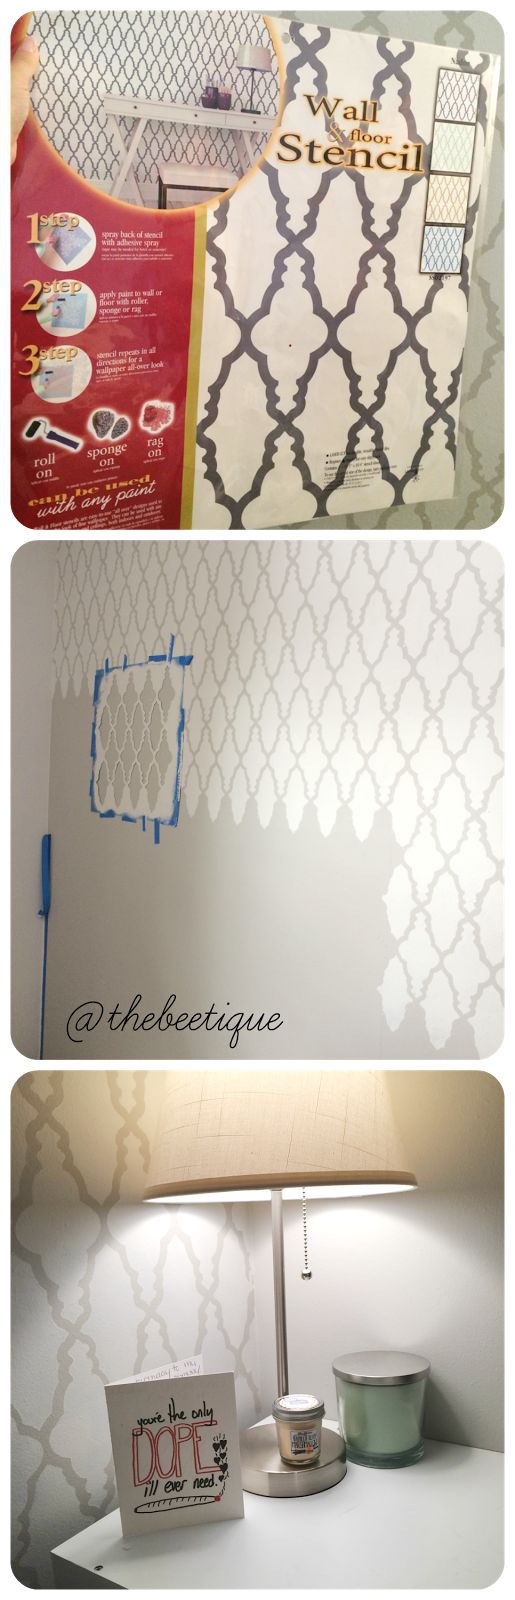 Wall Stencil Patterns Hobby Lobby : Best images about new house bathroom on